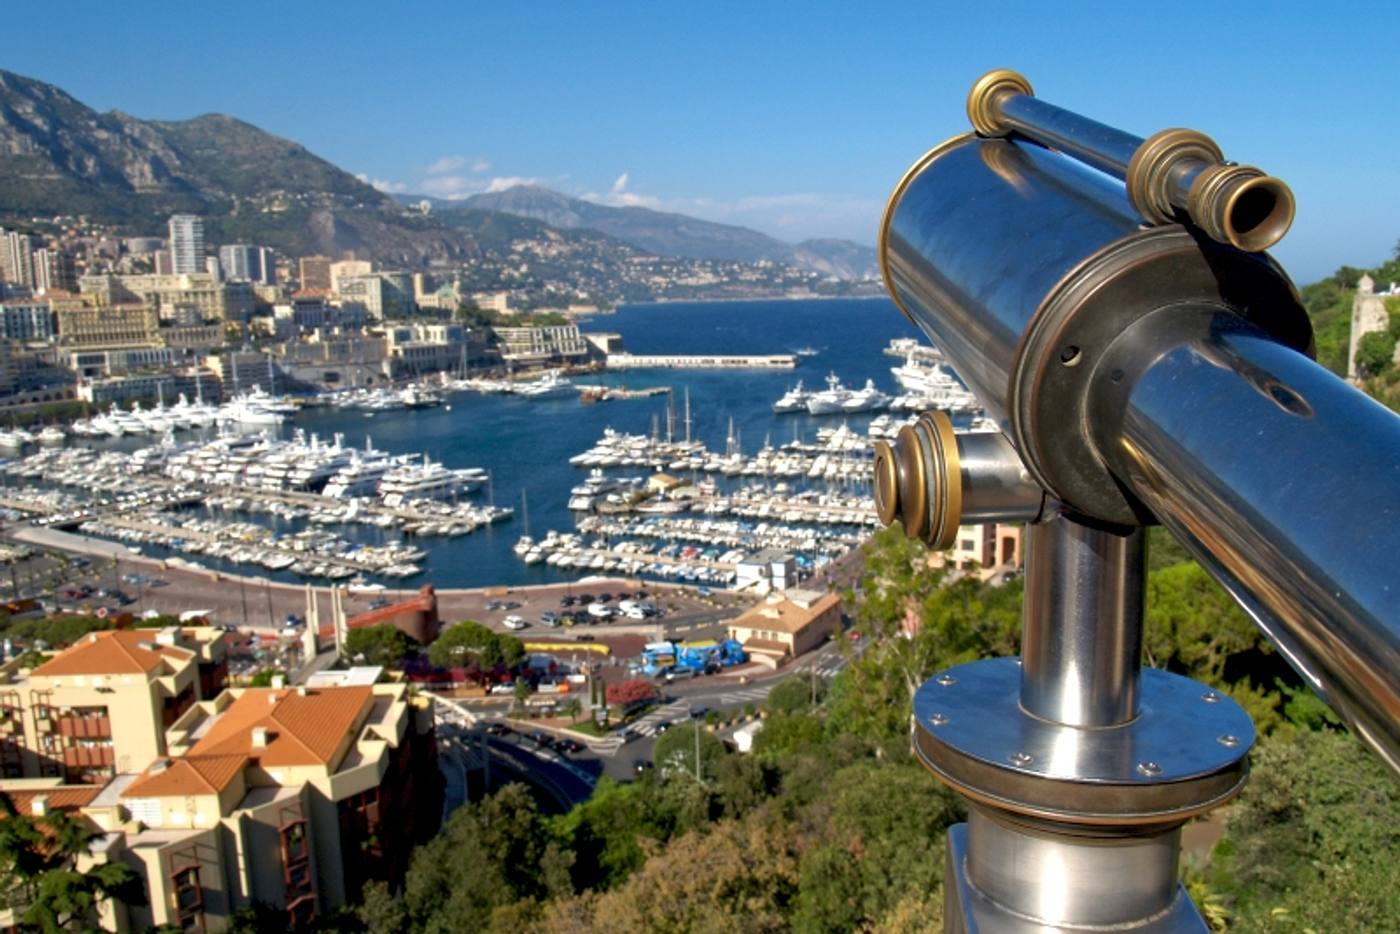 visiting monte carlo casino on our monaco luxury yacht charter vacation